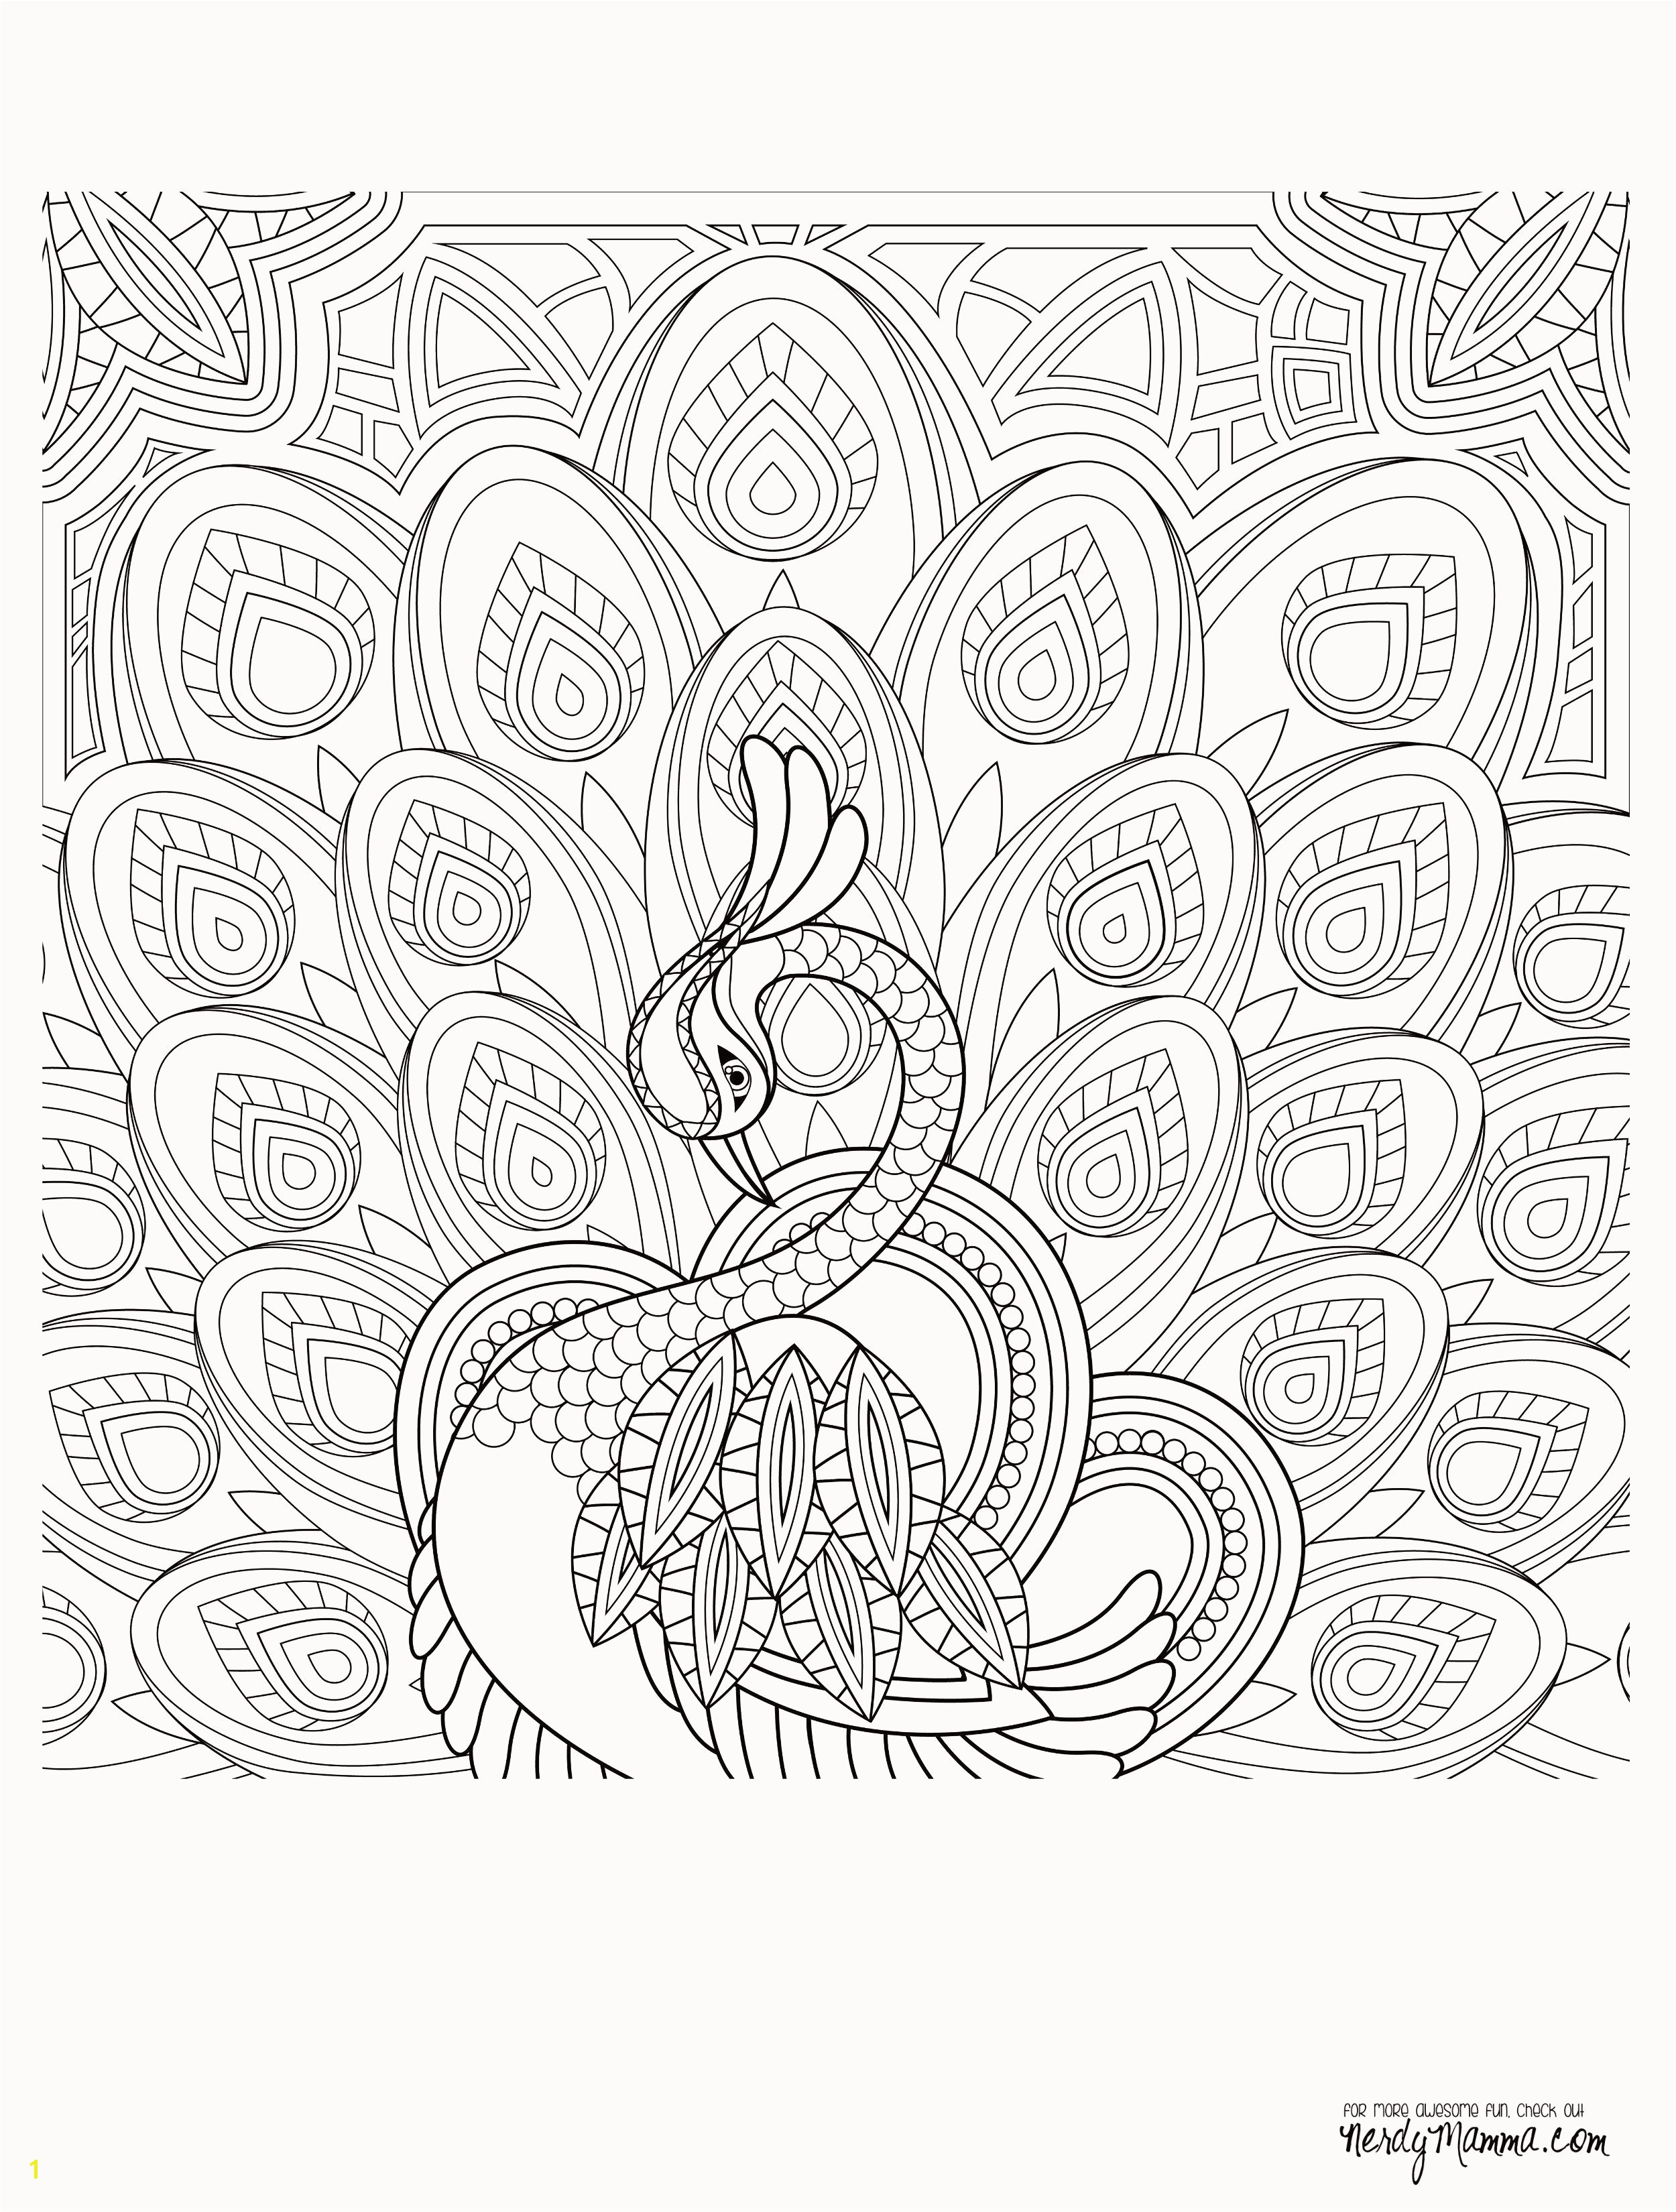 Simple Geometric Designs Coloring Pages Lovely Best Coloring Page for Adult Od Kids Simple Floral Heart